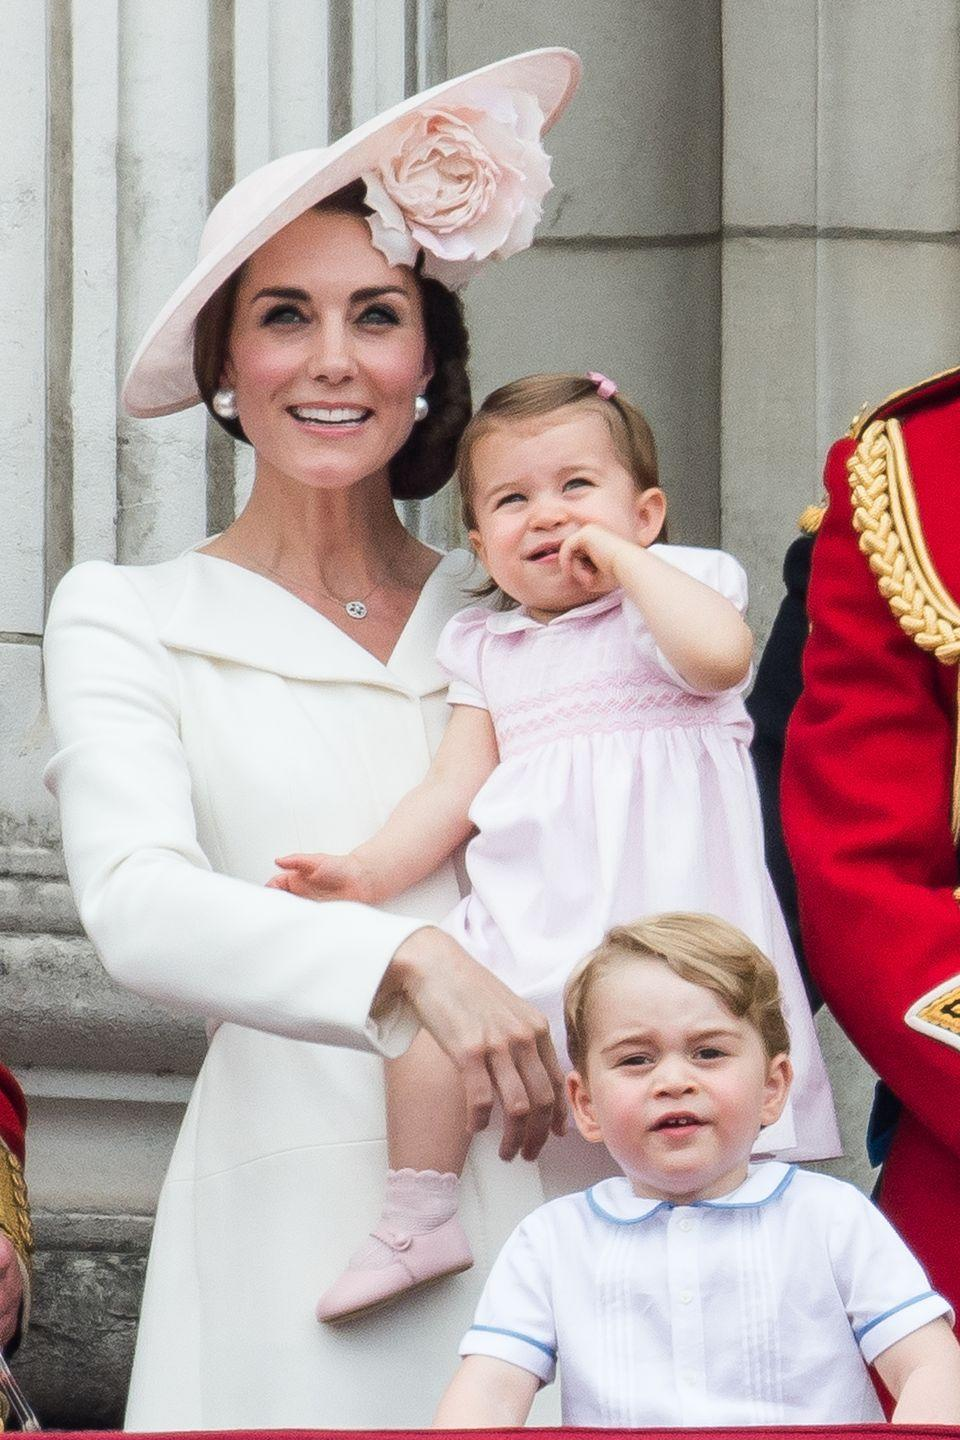 <p>The Duchess of Cambridge stands with Princess Charlotte and Prince George on the balcony at Buckingham Palace during the Trooping the Colour marking the Queen's official 90th birthday.</p>